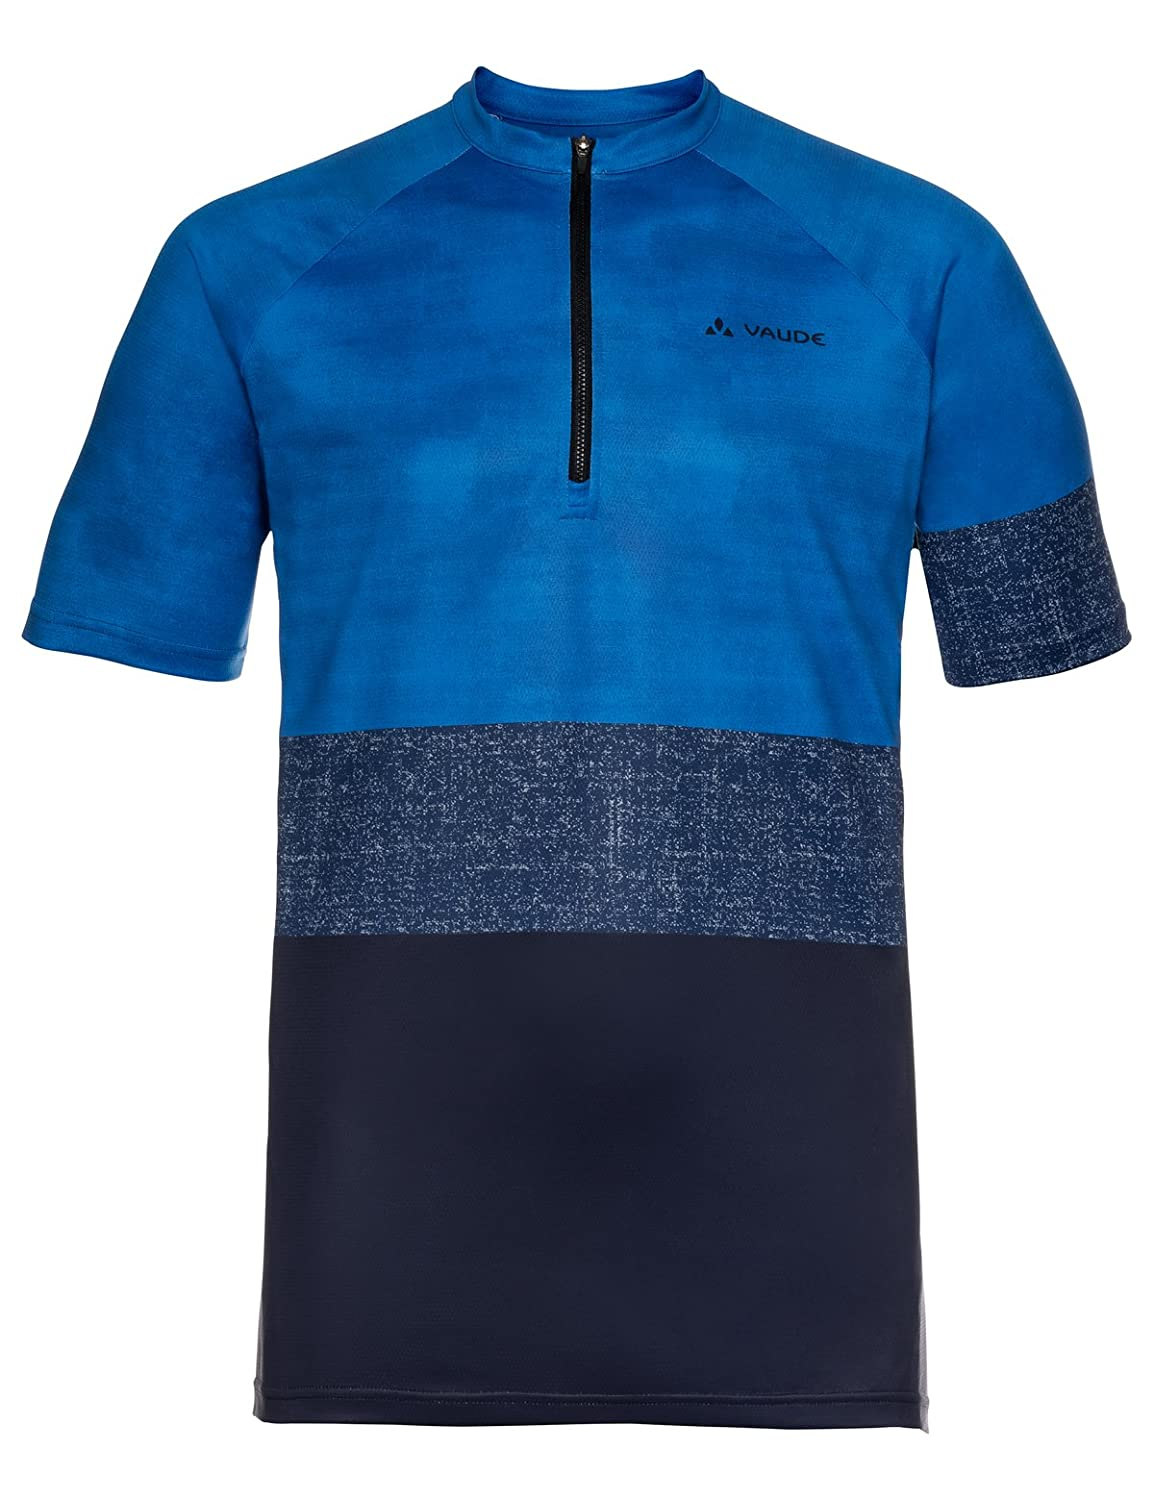 Eclipse L VAUDE Ligure Shirt Homme